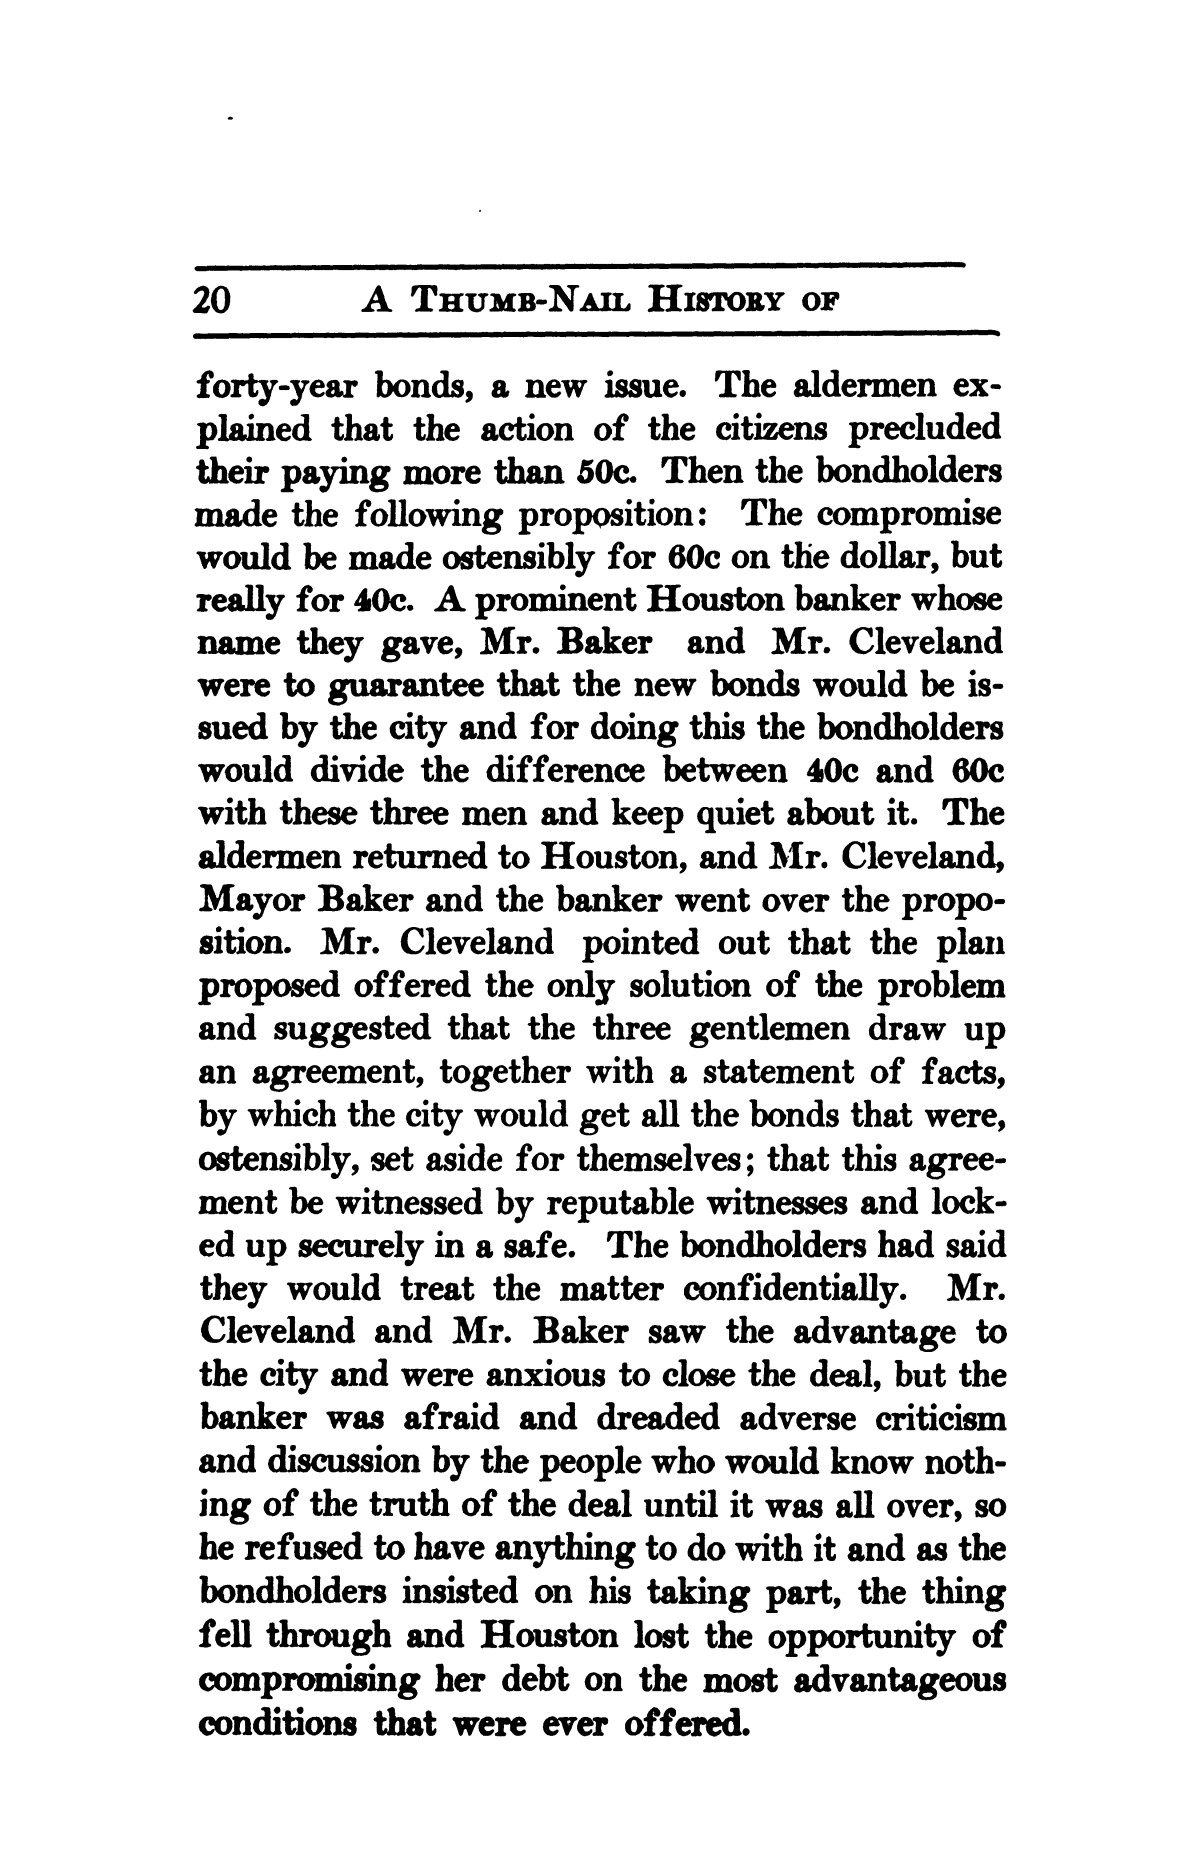 A thumb-nail history of the city of Houston, Texas, from its founding in 1836 to the year 1912                                                                                                      20